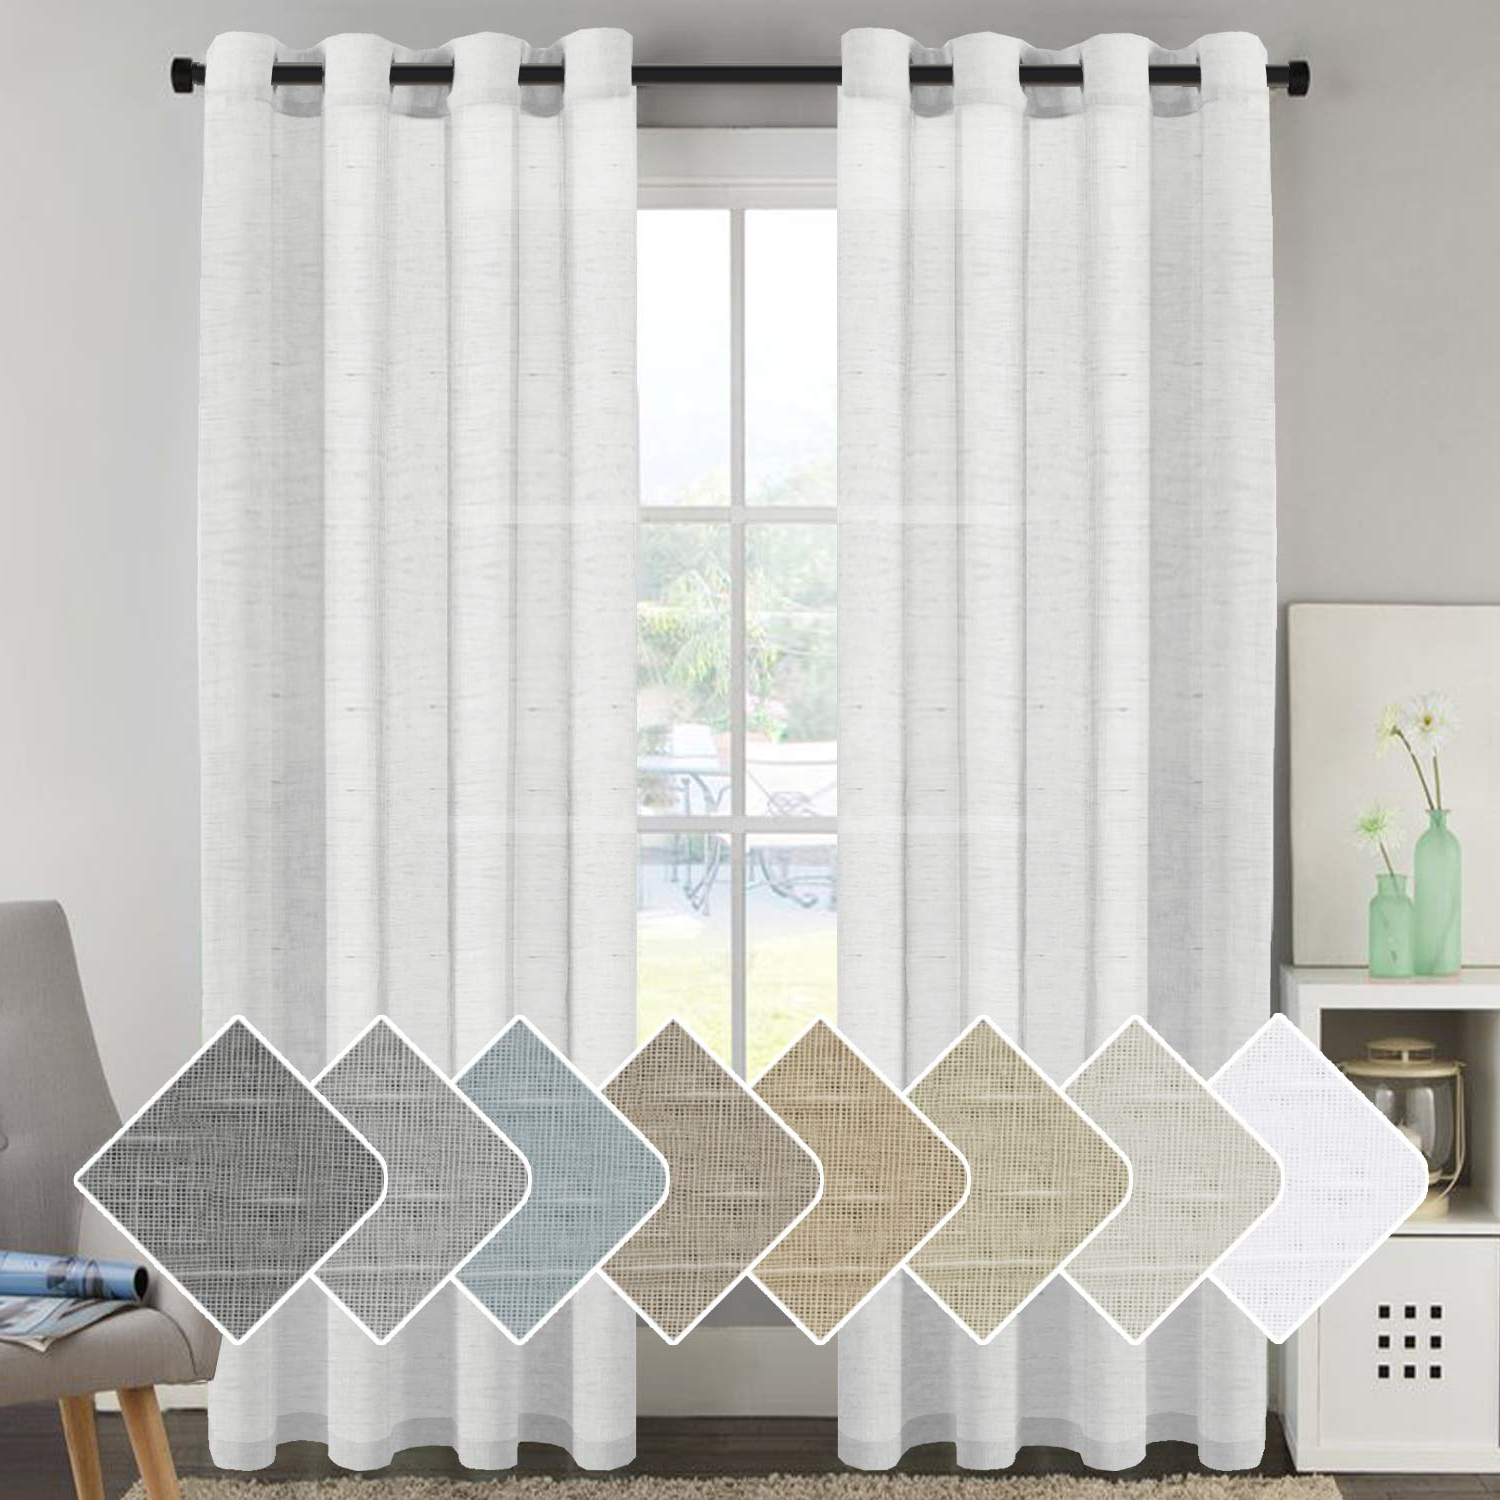 Details About Home Living Room 52 X 96 Premium Luxury Window Sheer Curtain Set, White Pertaining To Best And Newest Elegant Comfort Window Sheer Curtain Panel Pairs (View 16 of 20)